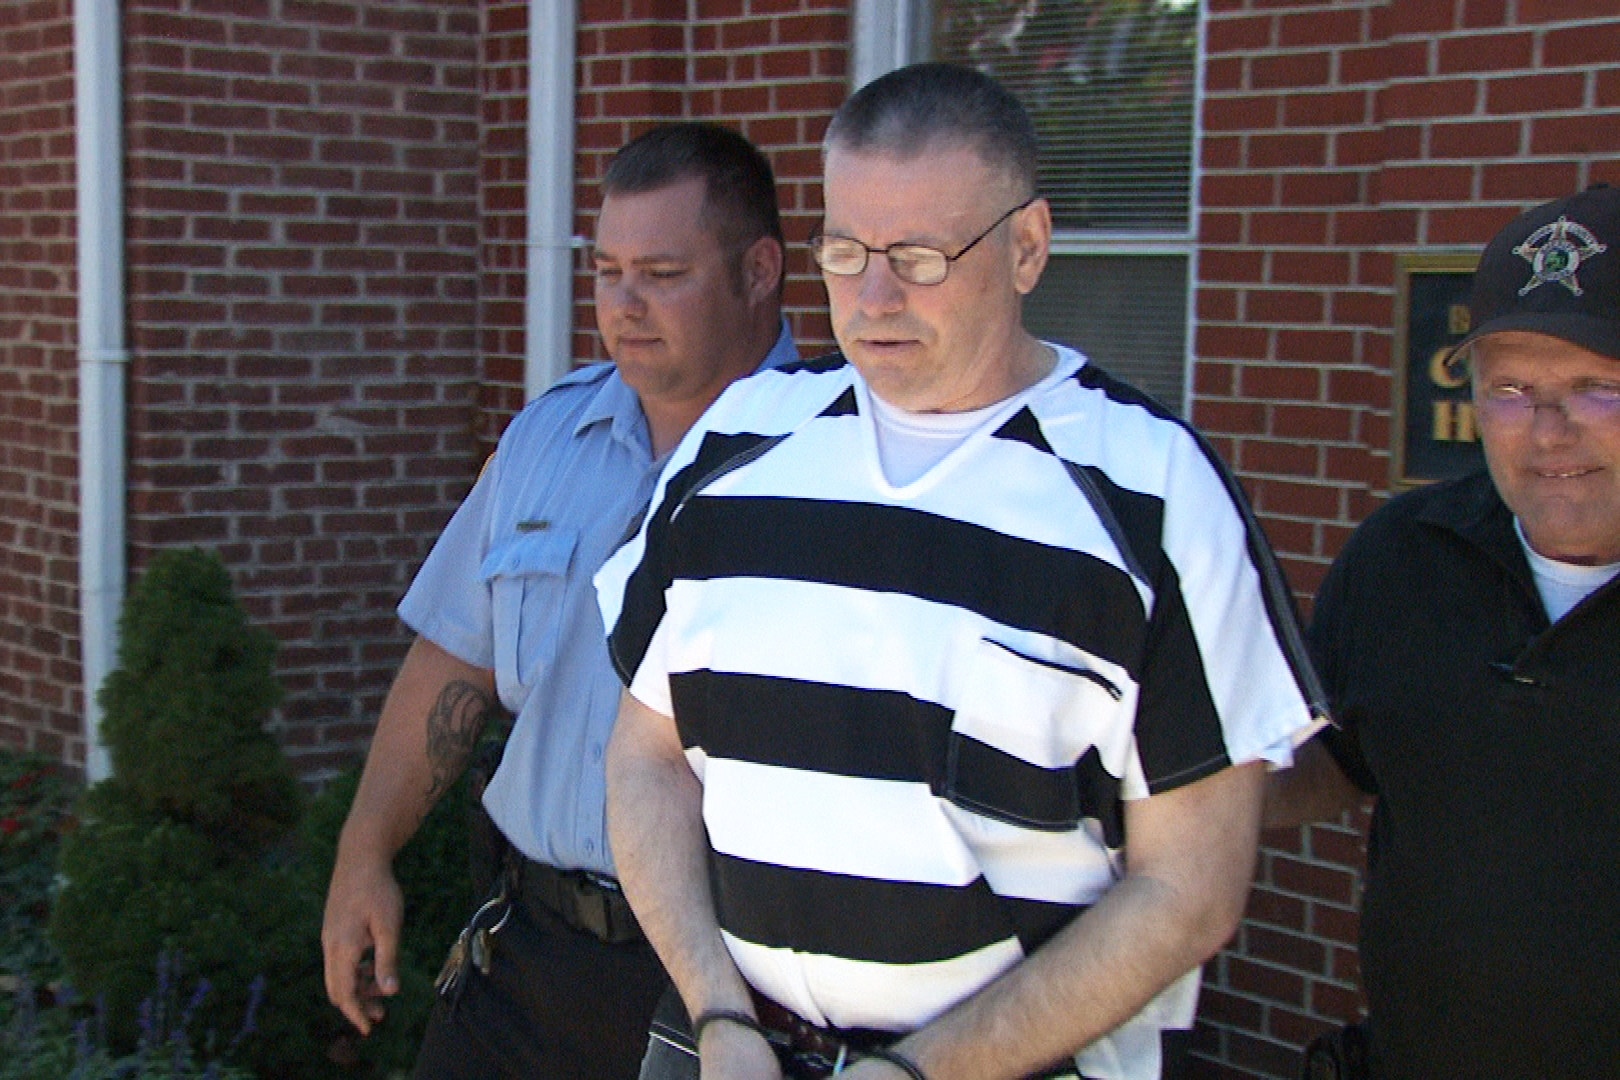 Daniel Messel is escorted out of the courthouse after receiving his 80 year prison sentence.